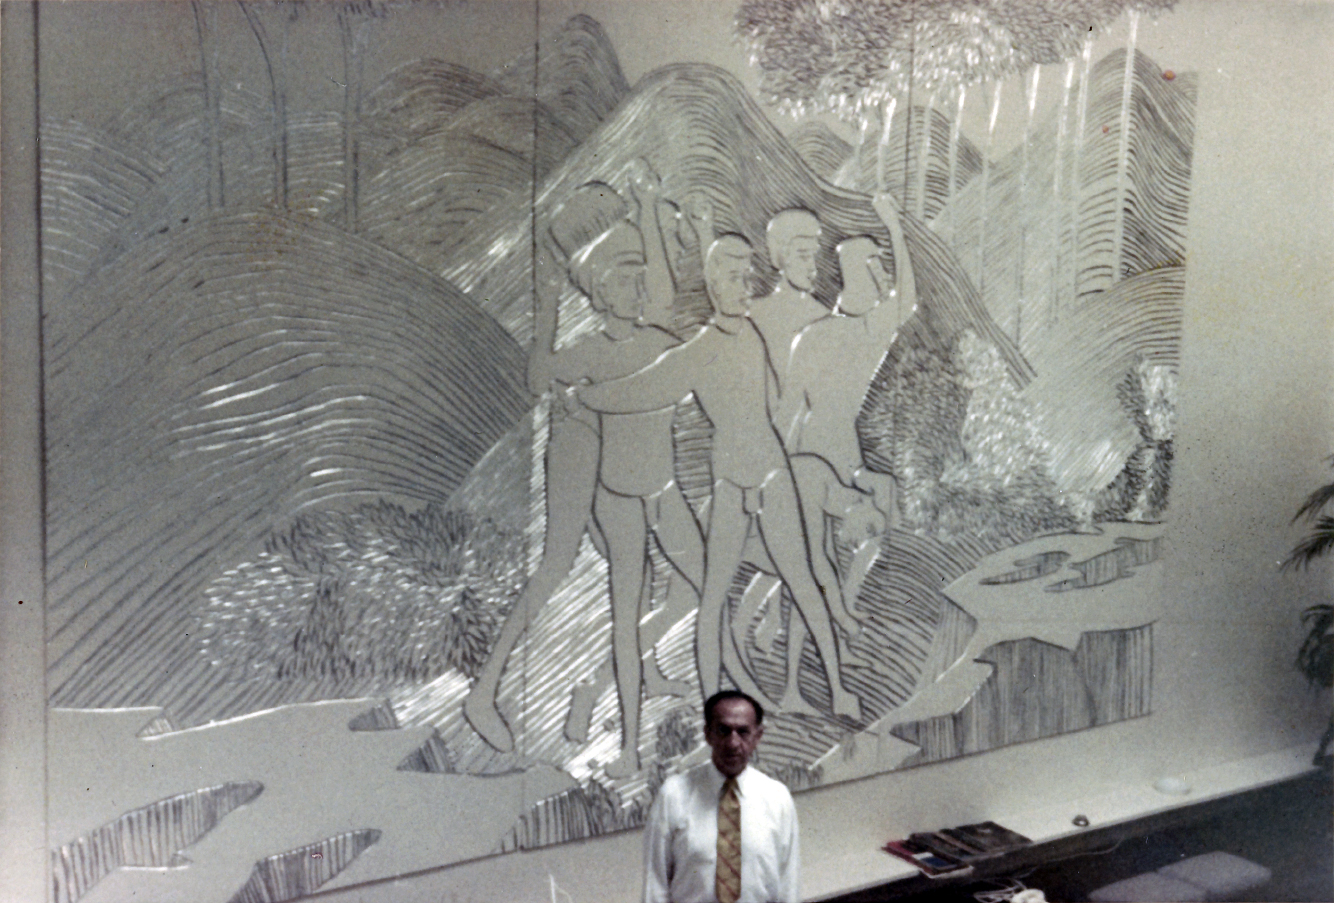 Hirsch townhouse, New York City. Photo of Interior showing Alexander Hirsch standing before the mural in his townhouse.